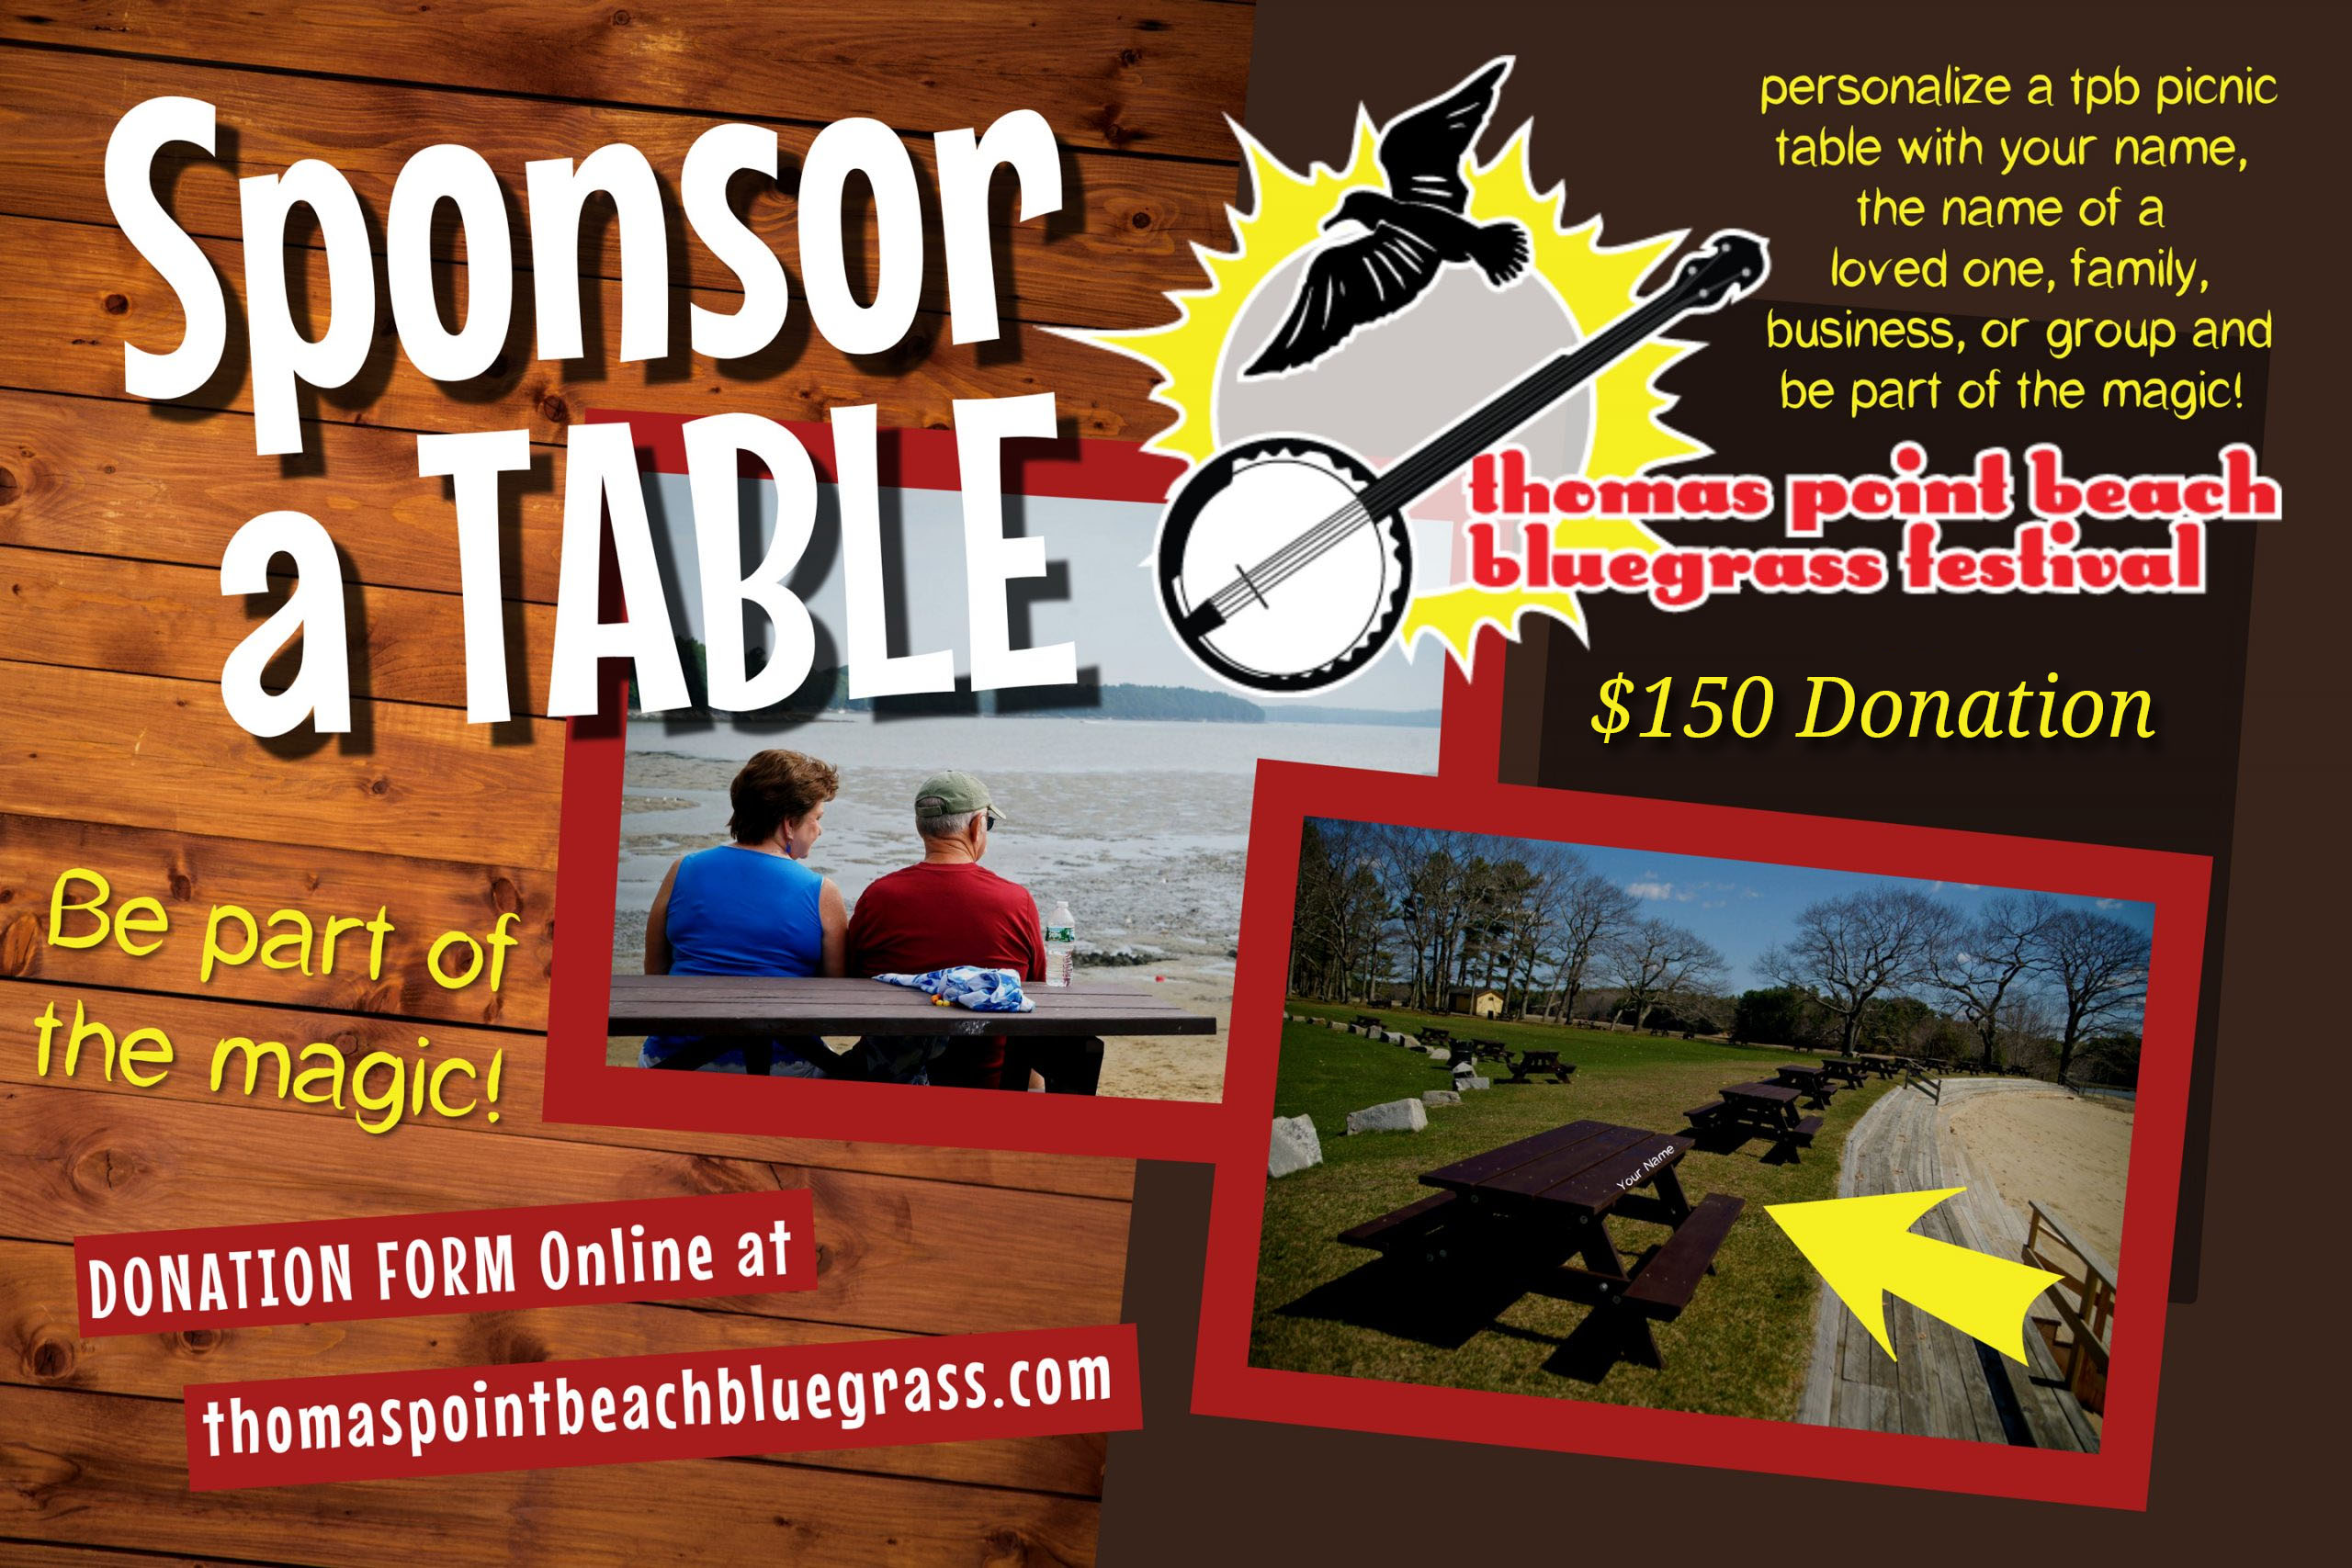 Sponsor a Picnic Table